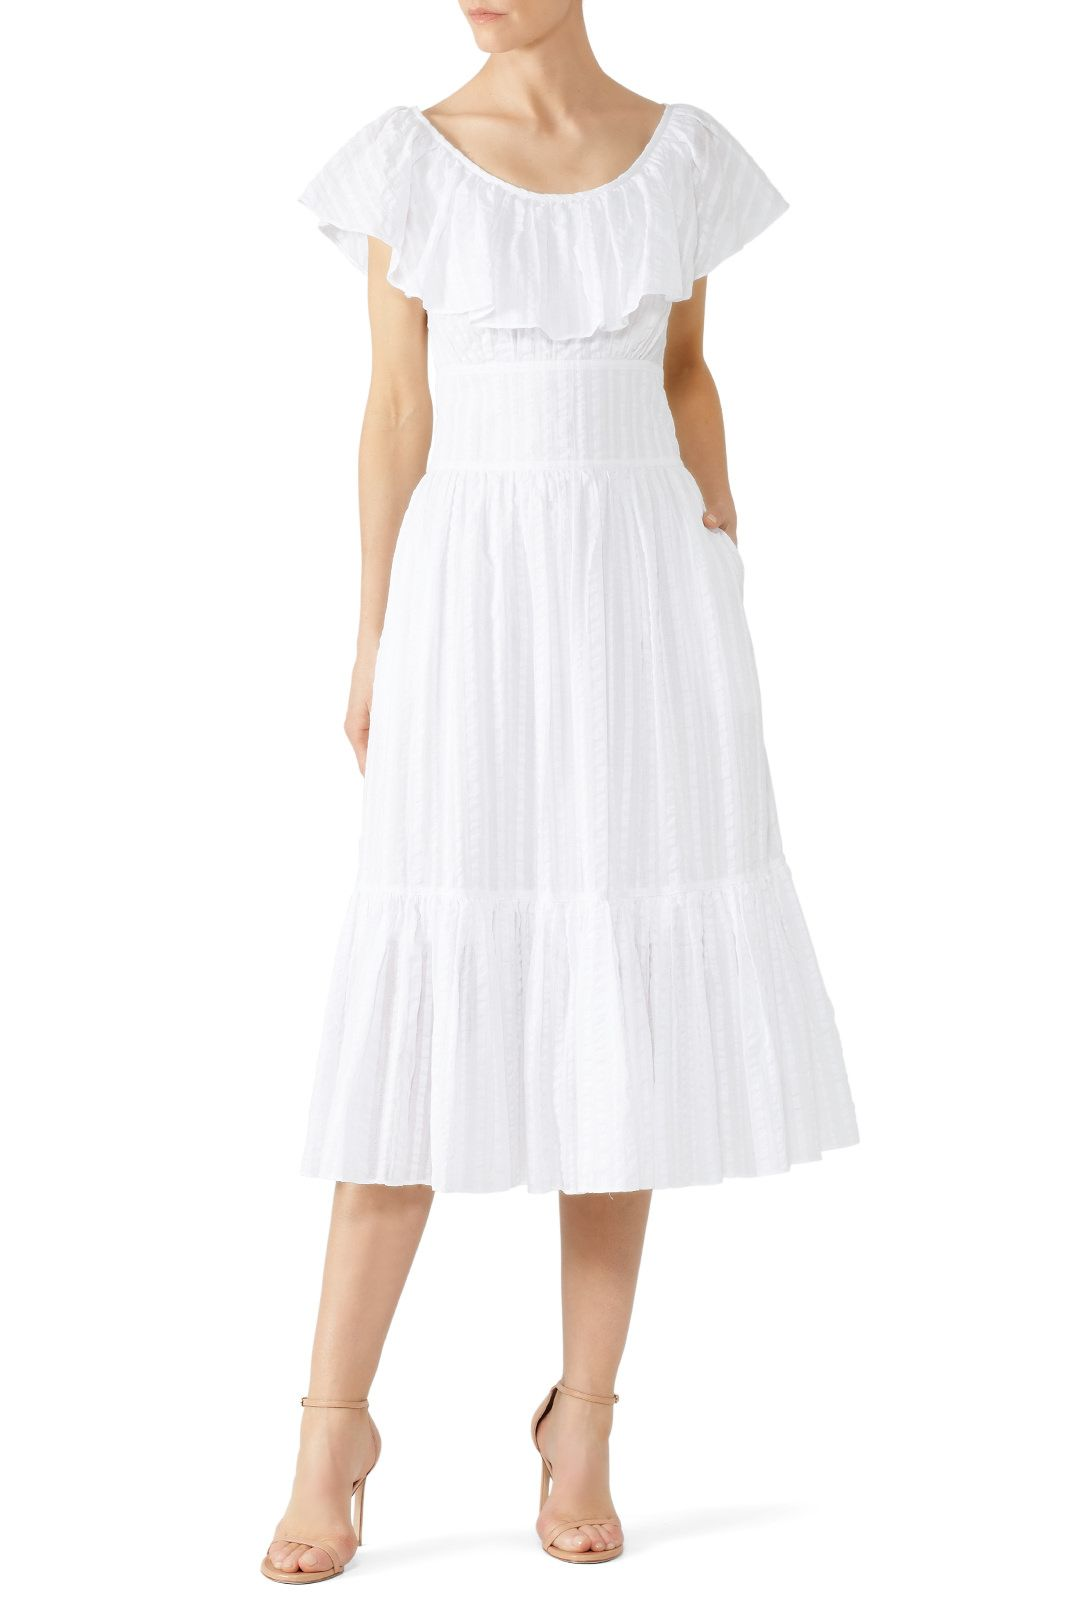 25862375f Rent Striped Seersucker Dress by Tory Burch for $65 only at Rent the Runway.